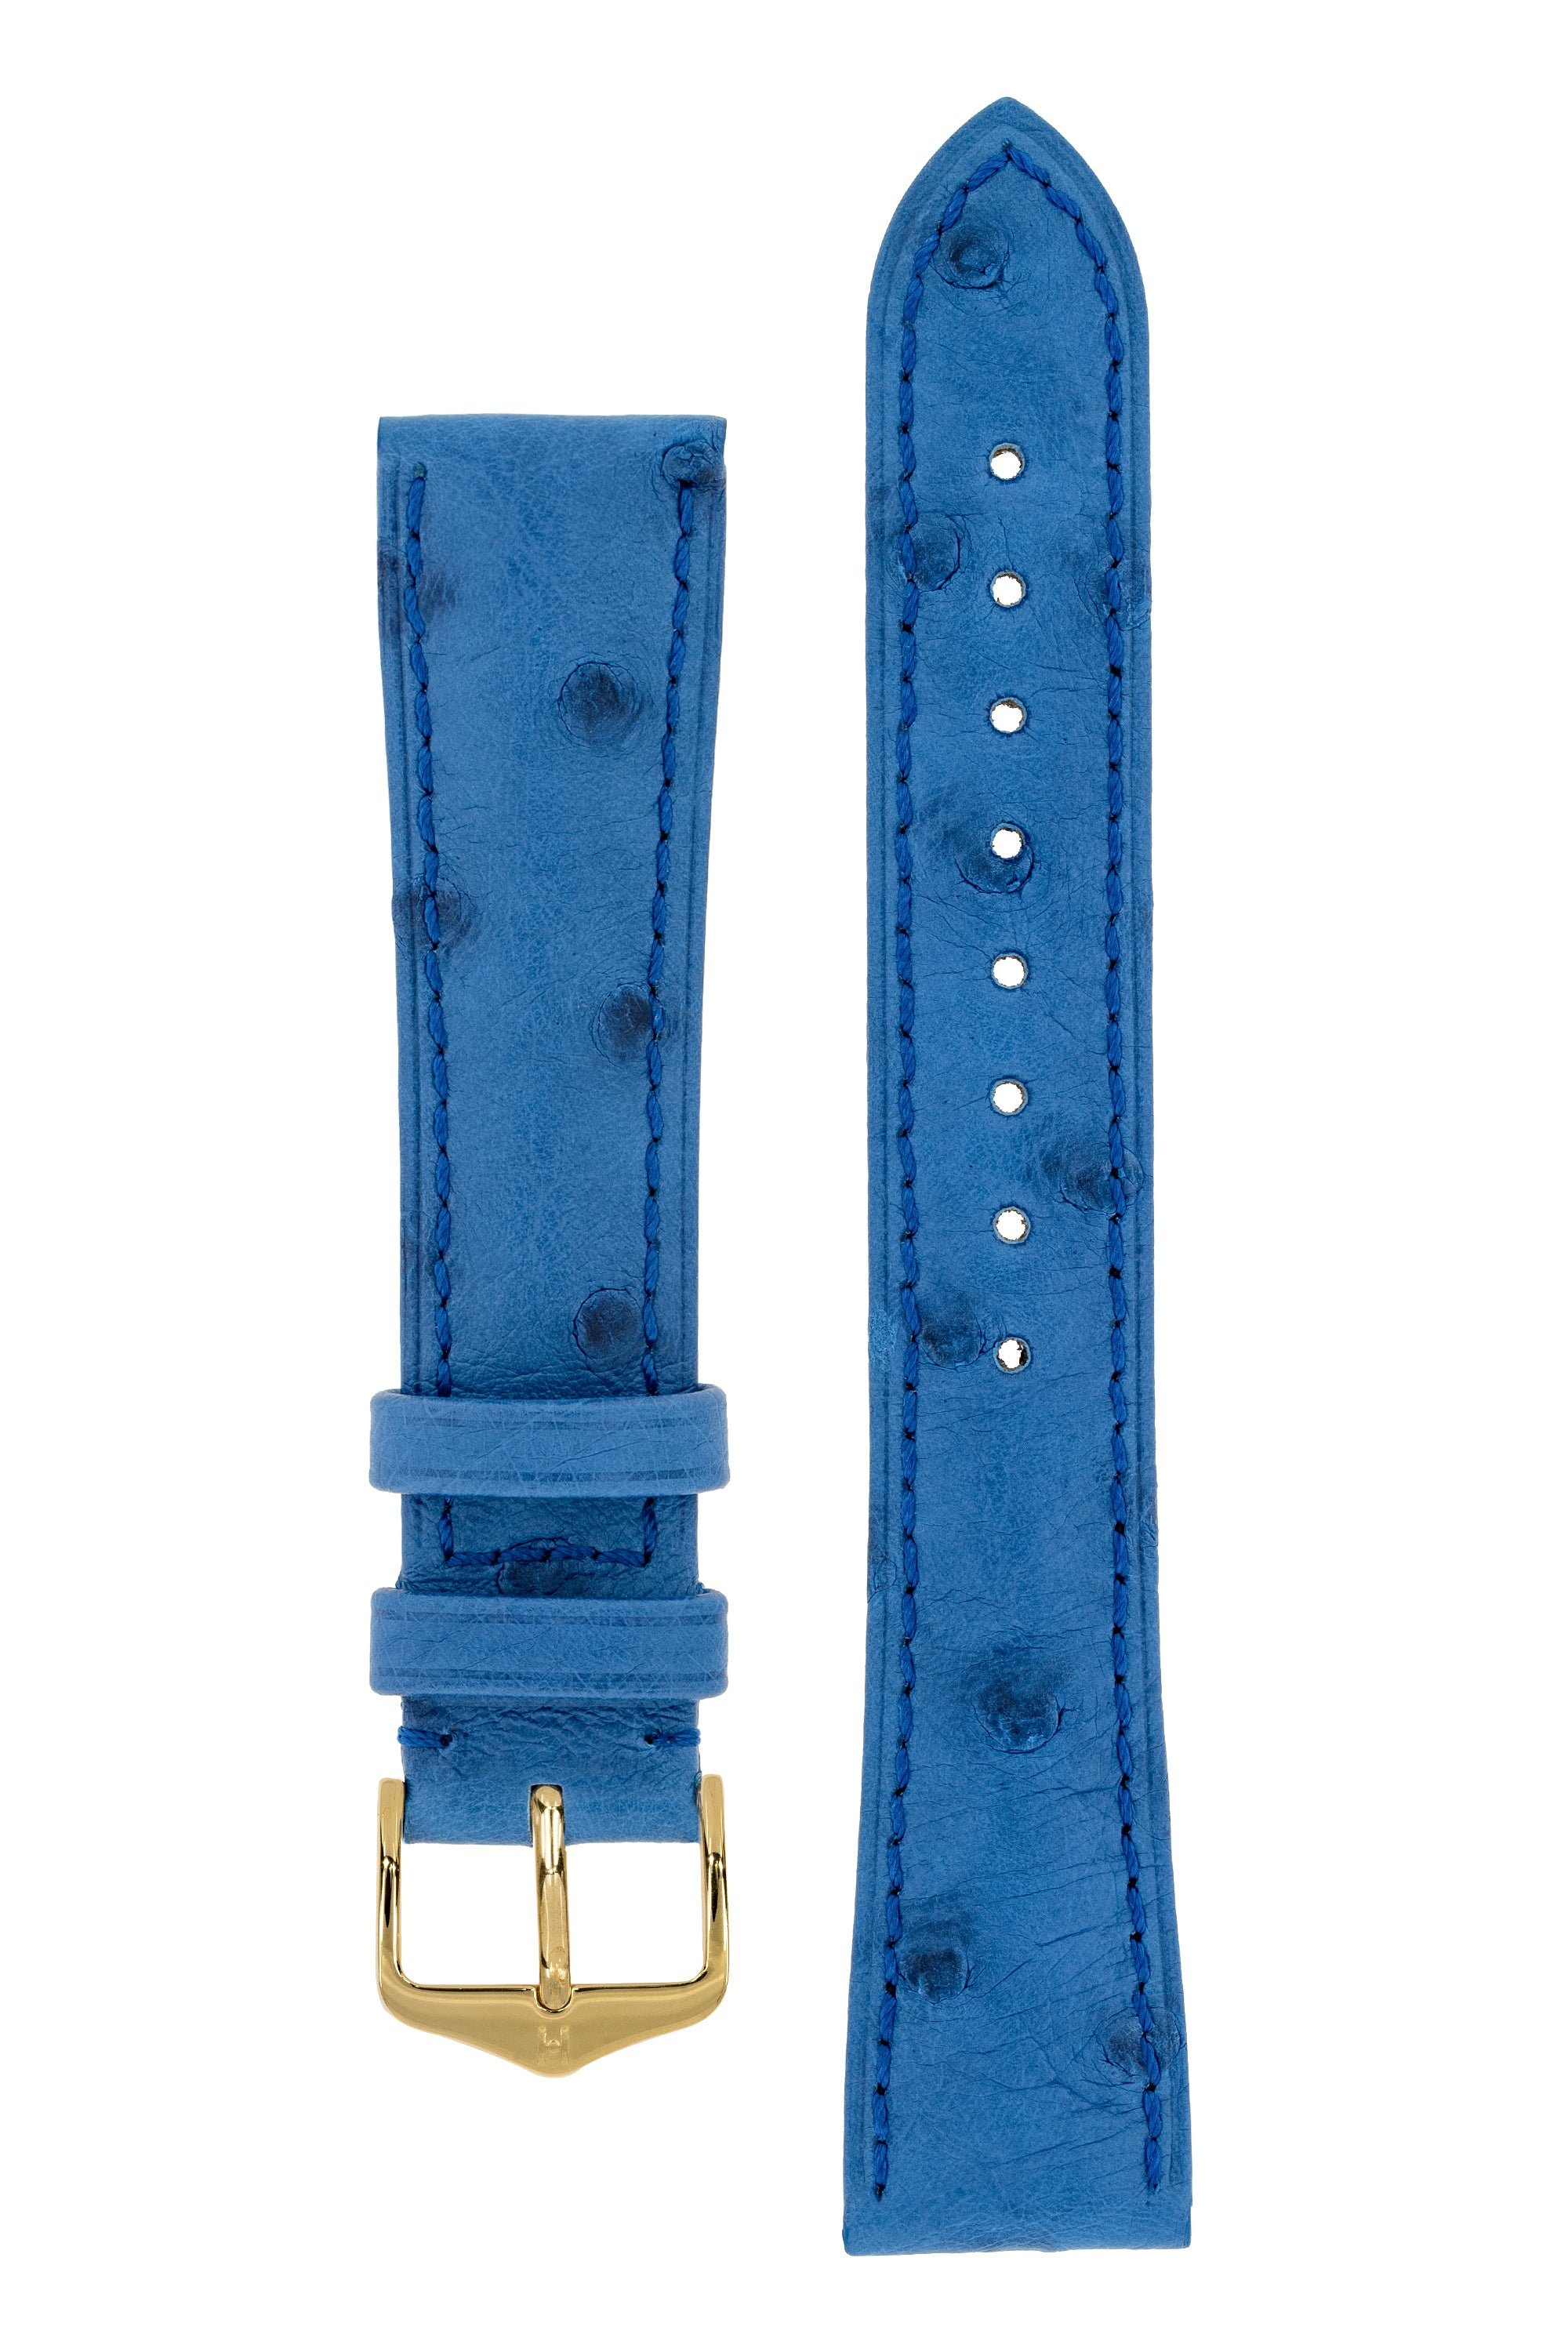 Hirsch MASSAI OSTRICH Leather Watch Strap in ROYAL BLUE